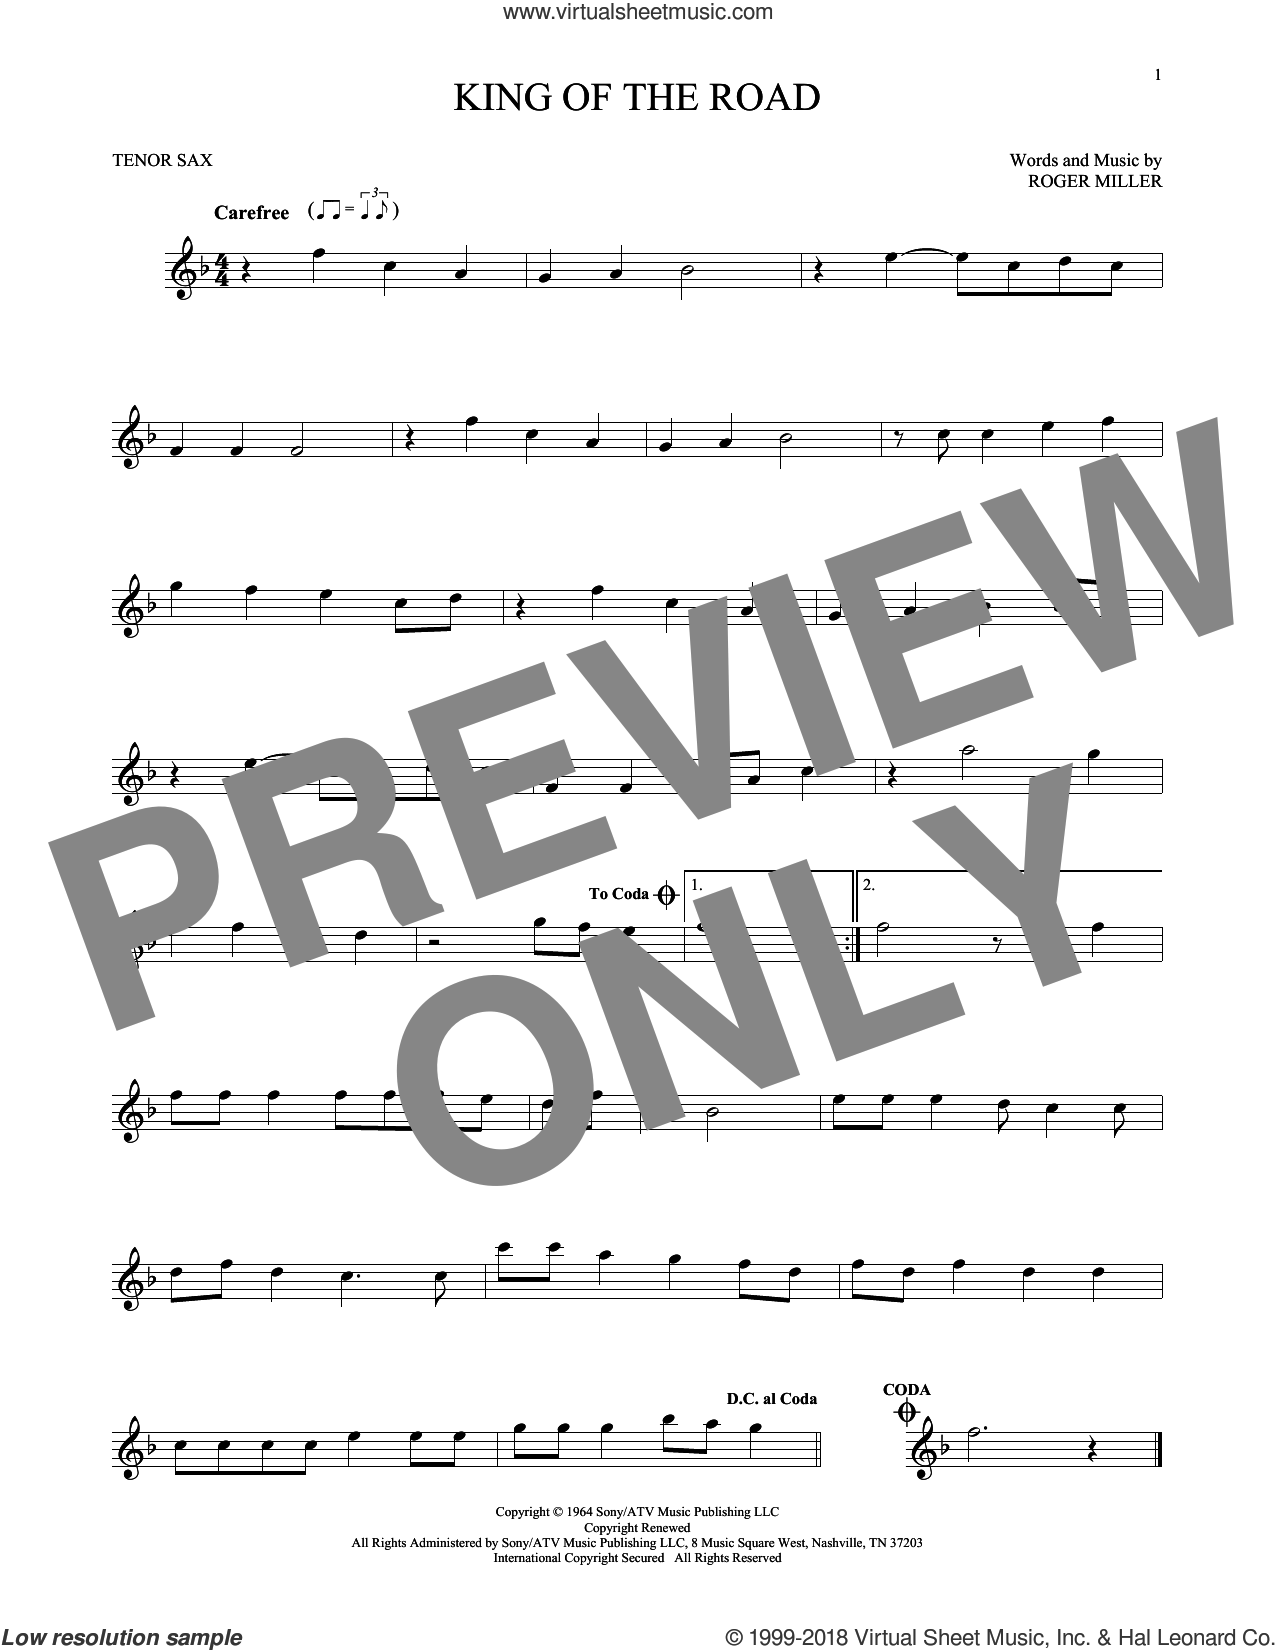 King Of The Road sheet music for tenor saxophone solo by Roger Miller, intermediate skill level